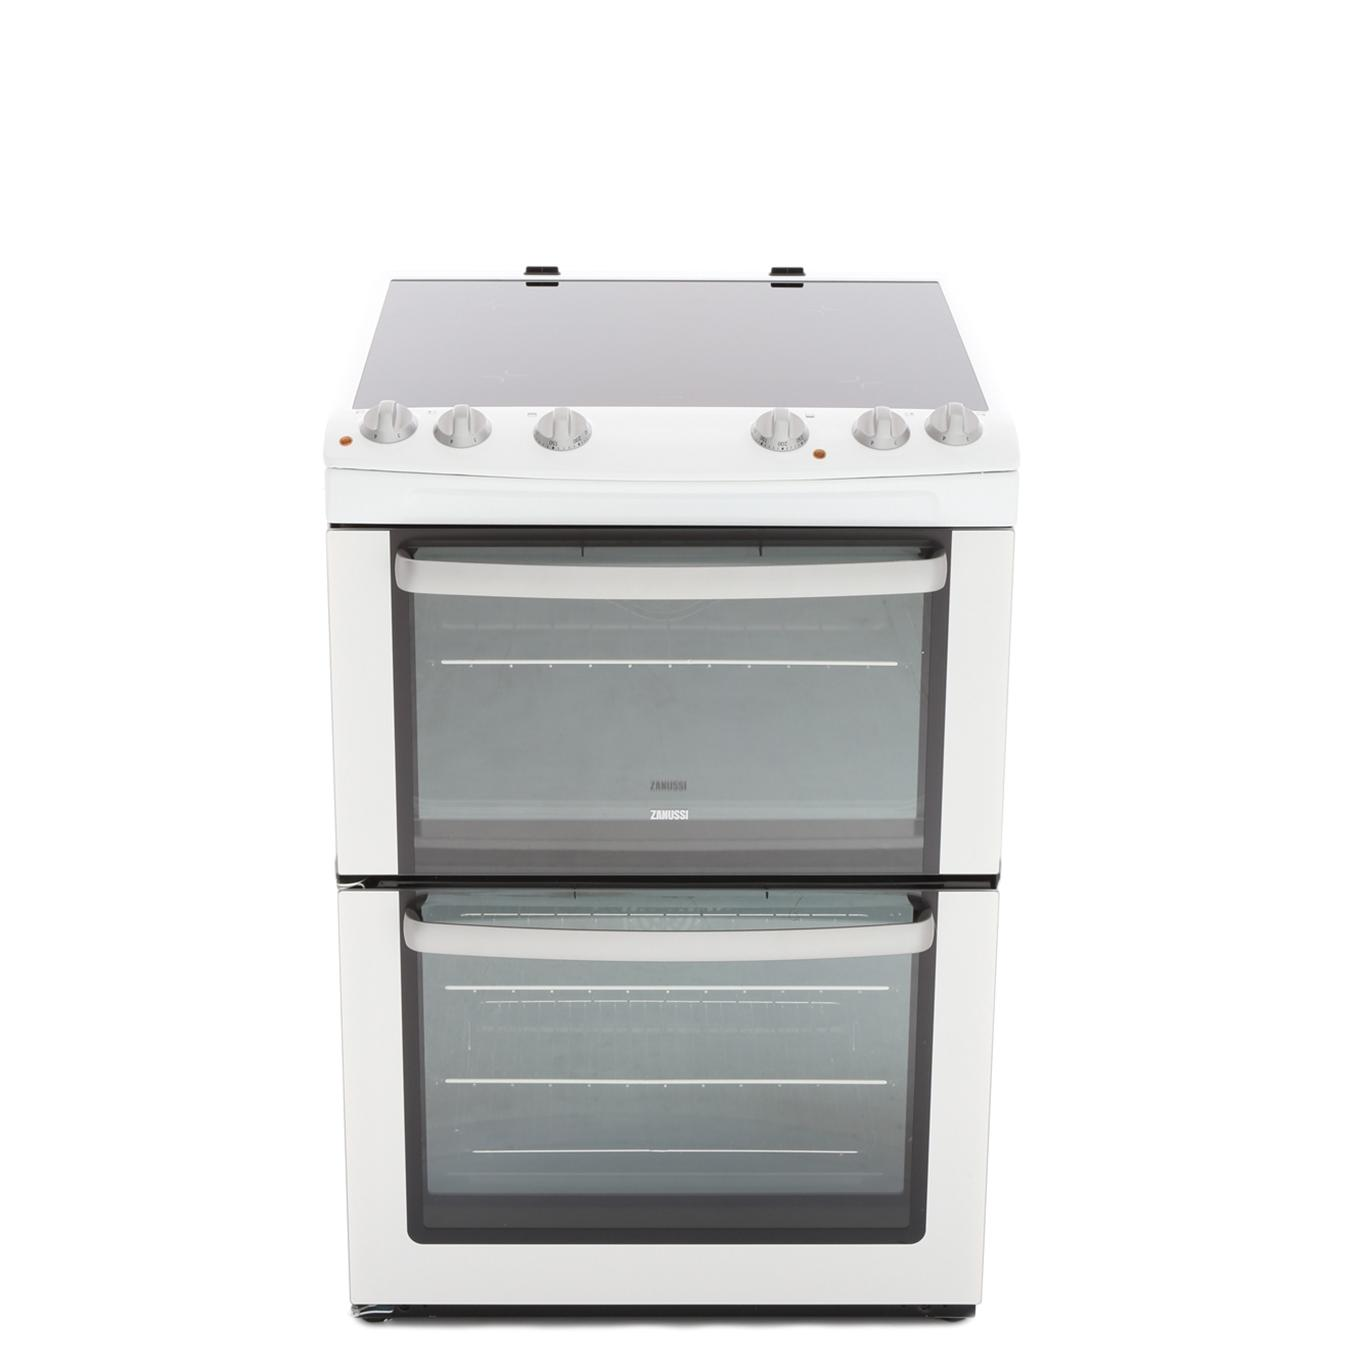 Zanussi ZCV668MW Ceramic Electric Cooker with Double Oven